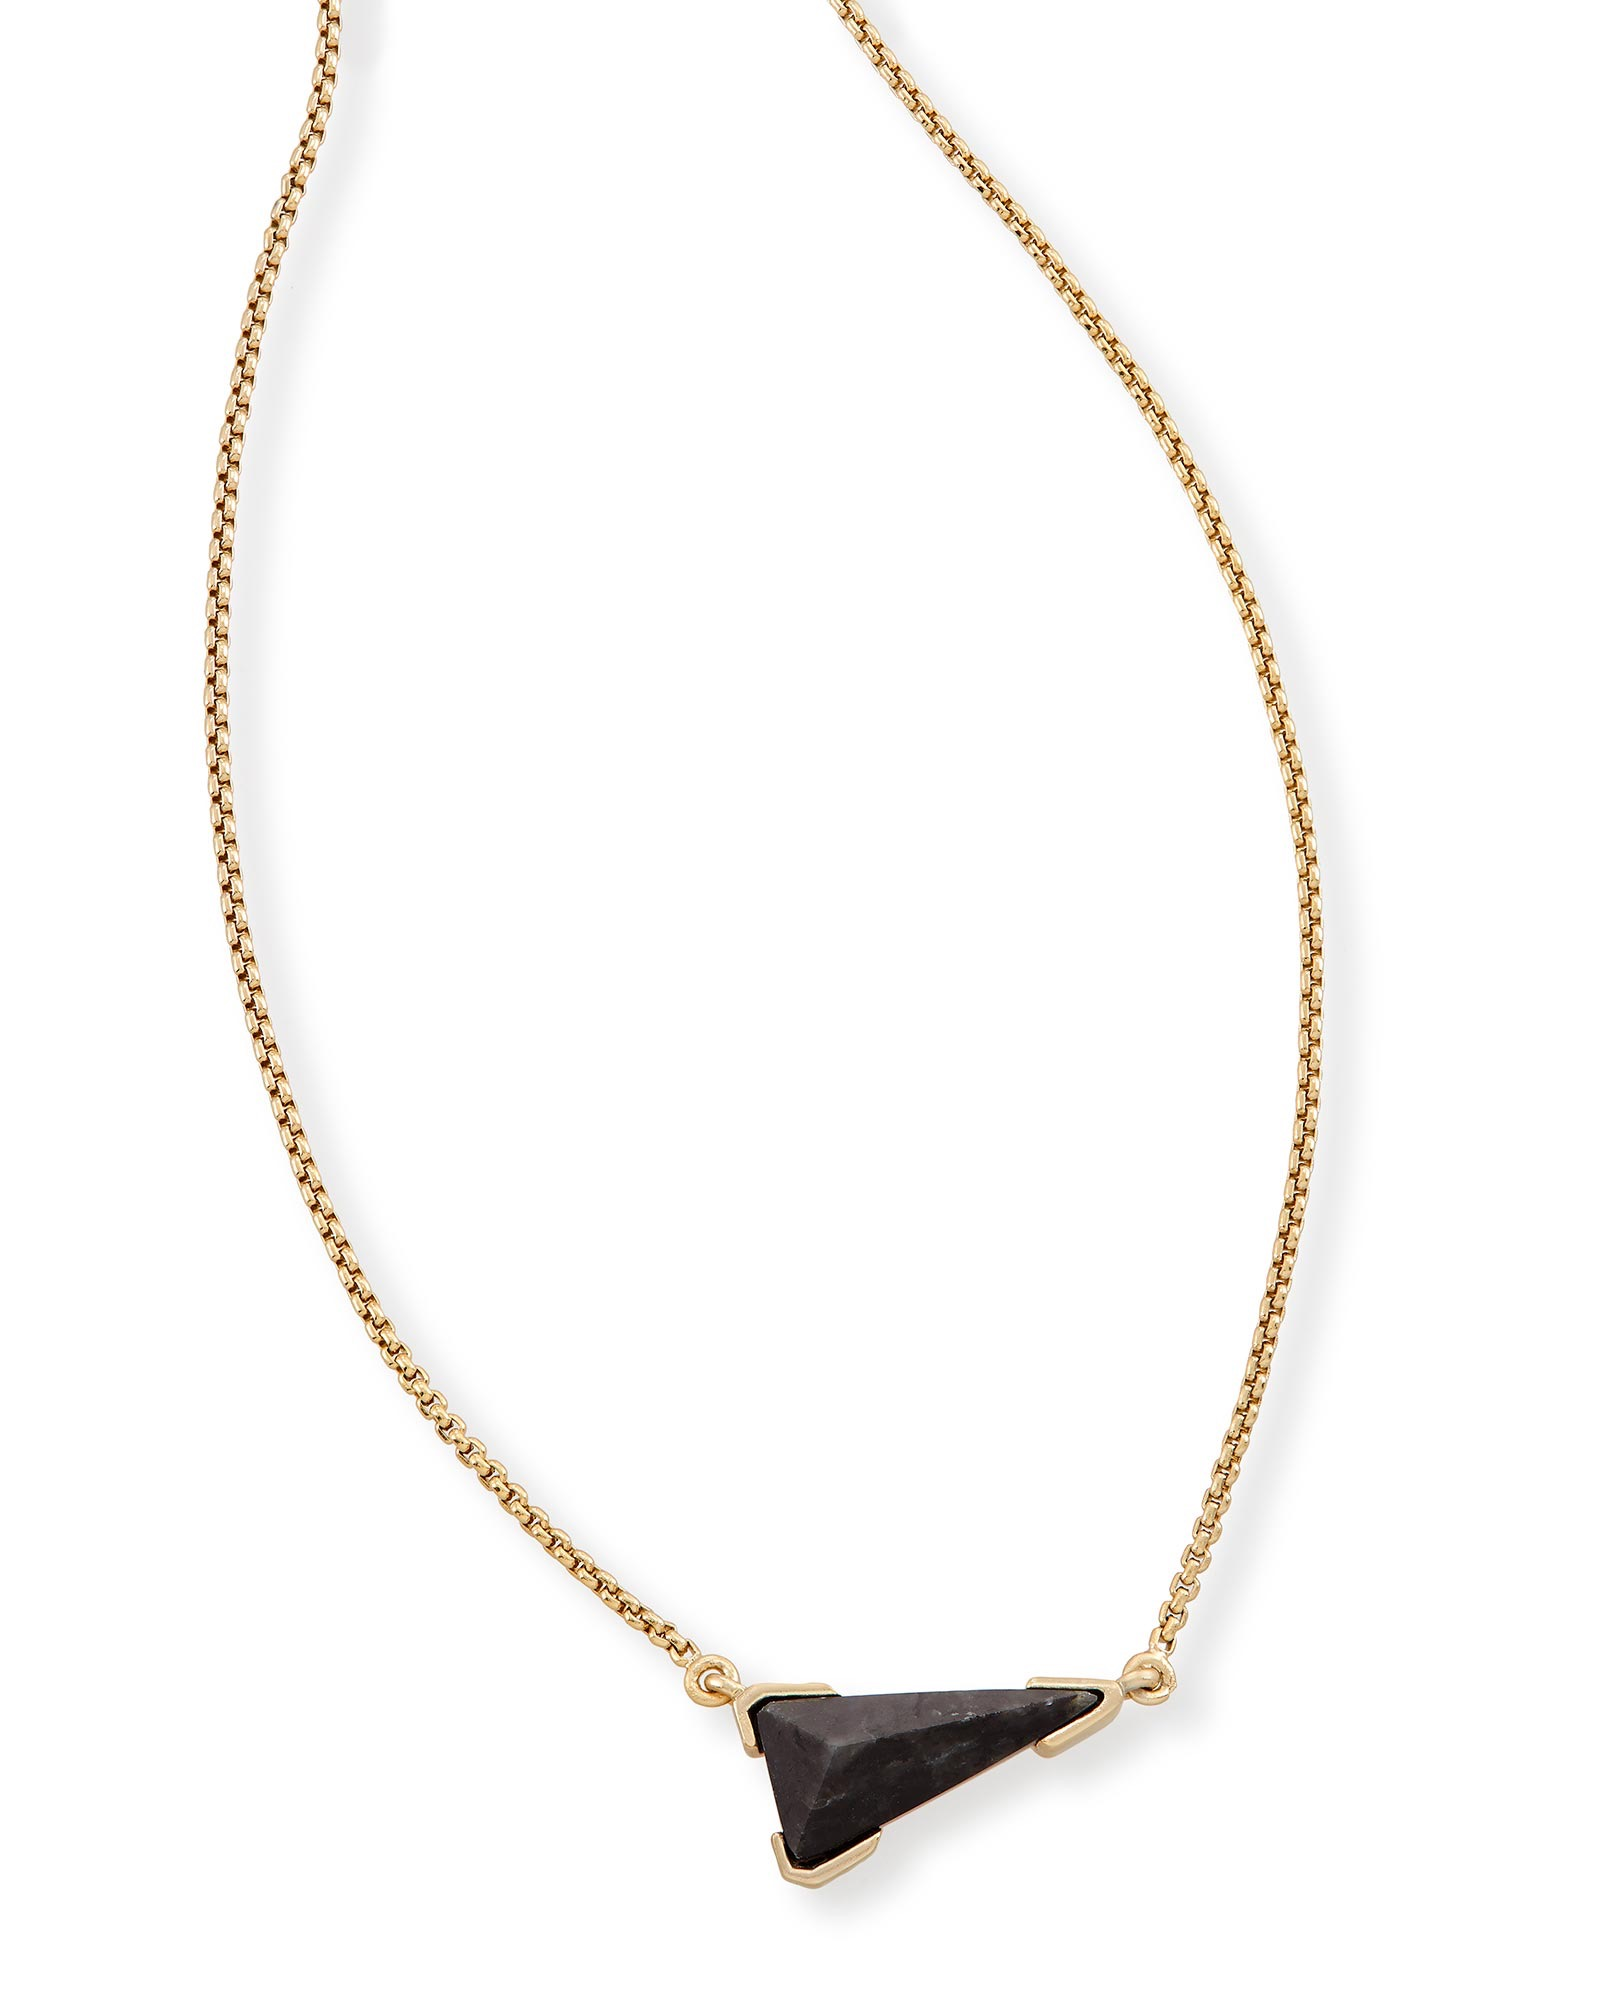 Racquel Pendant Necklace in Black Granite